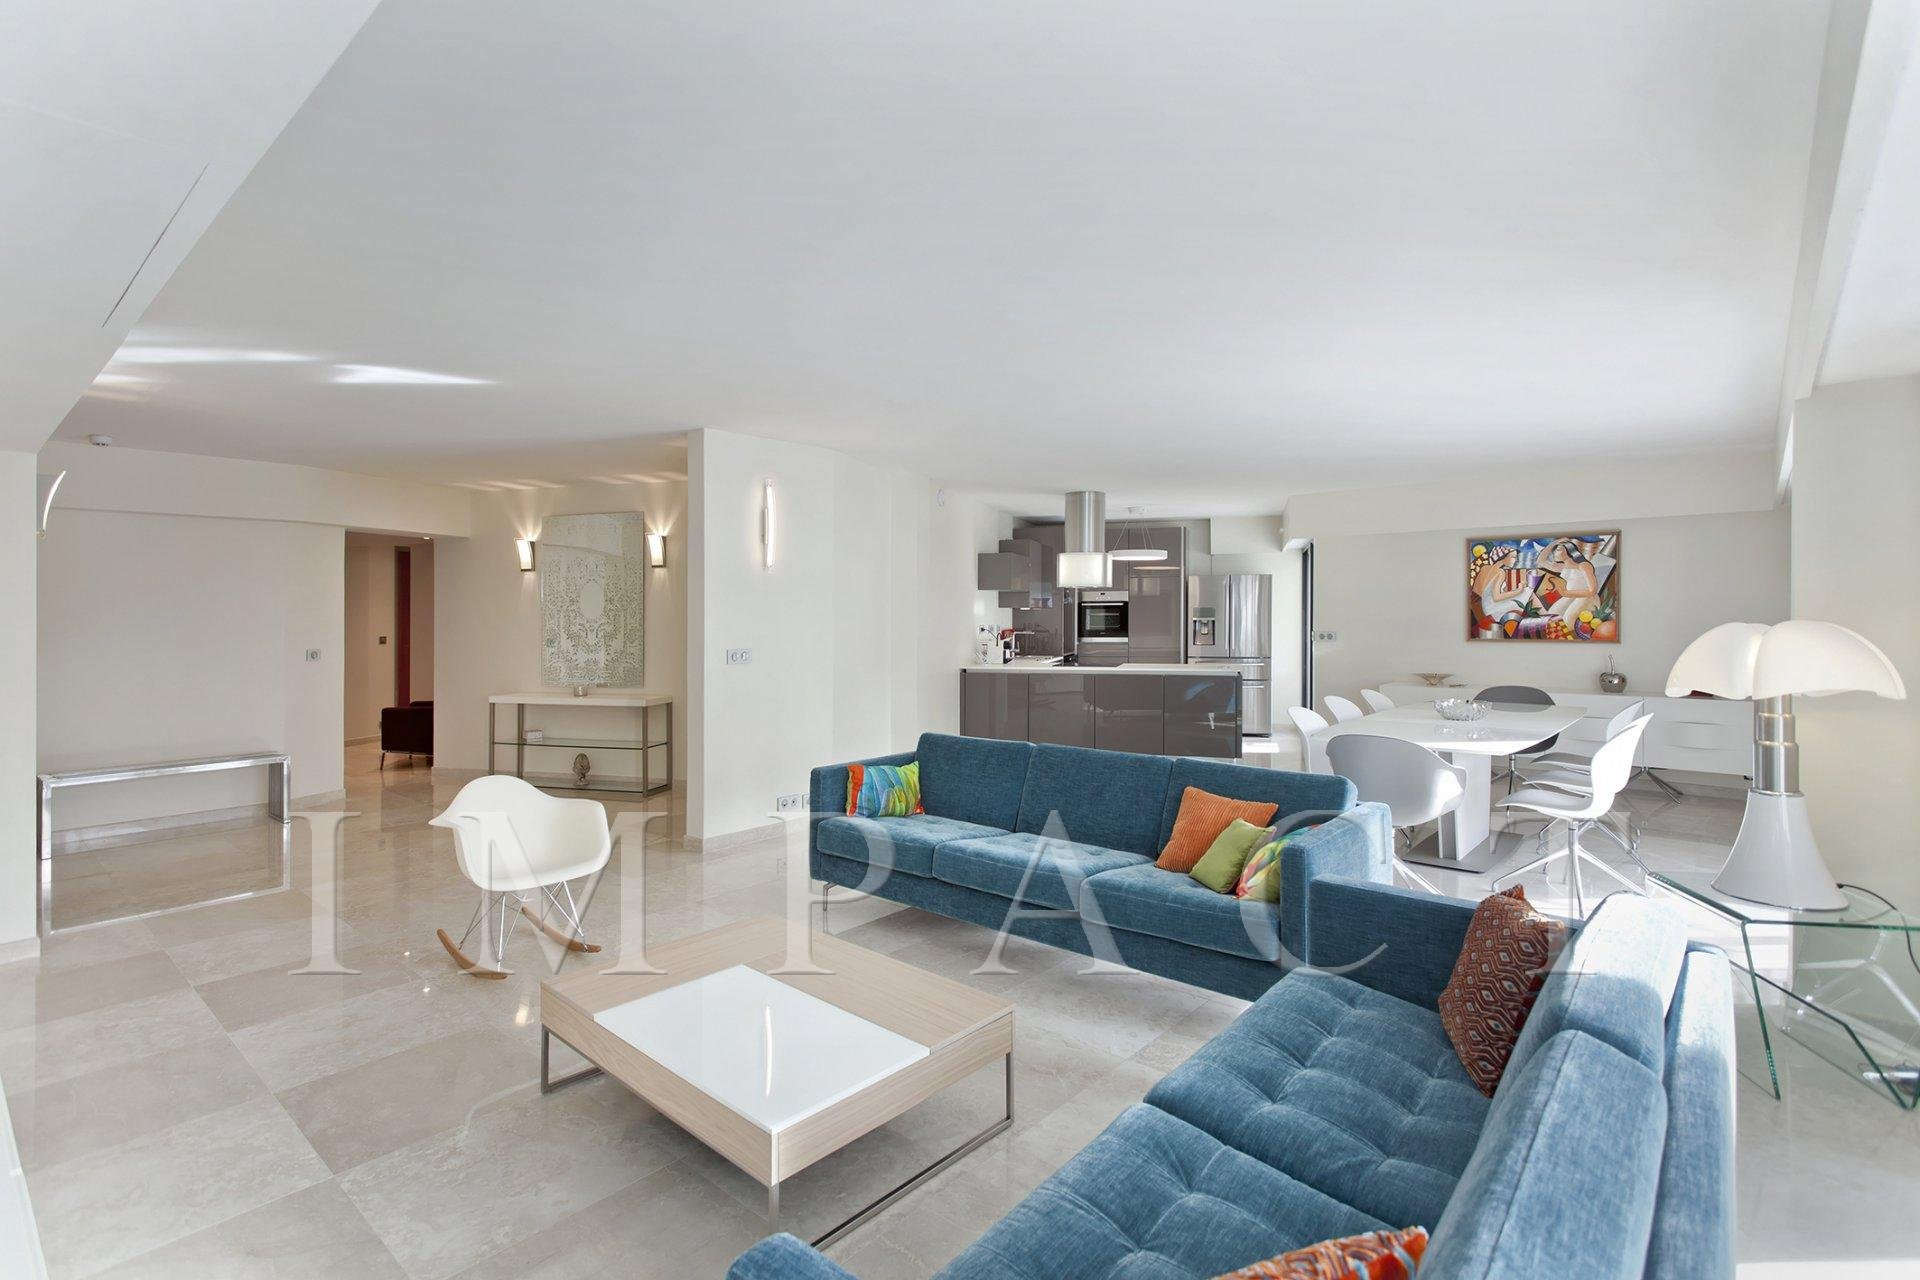 4 bedrooms apartment in the center of Cannes to rent